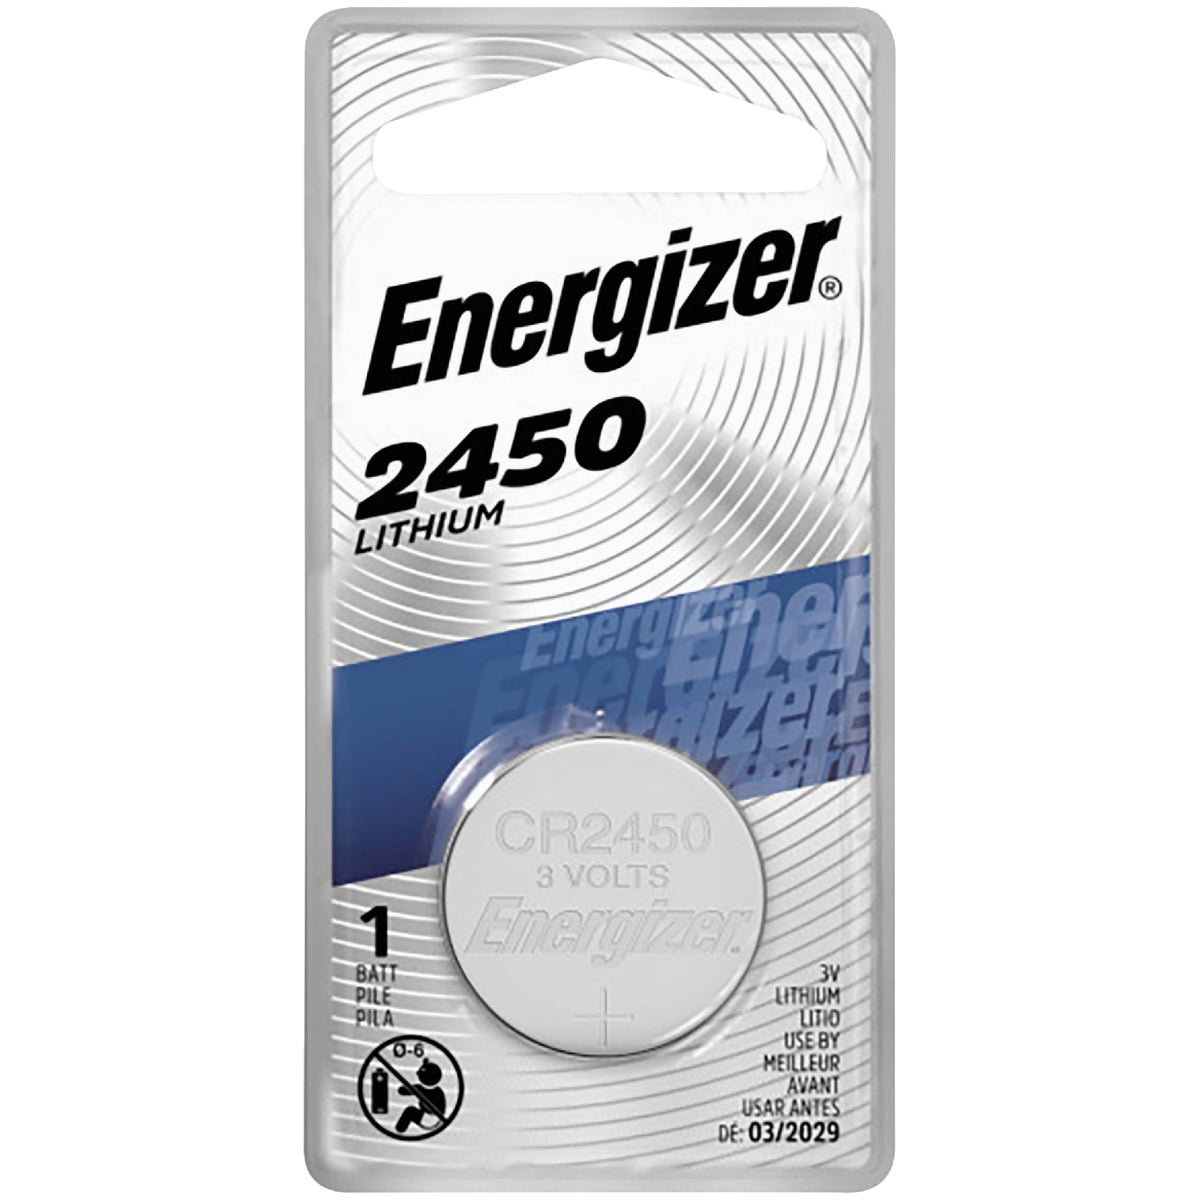 3V LITHIUM BATTERY - ECR2450BP by Energizer